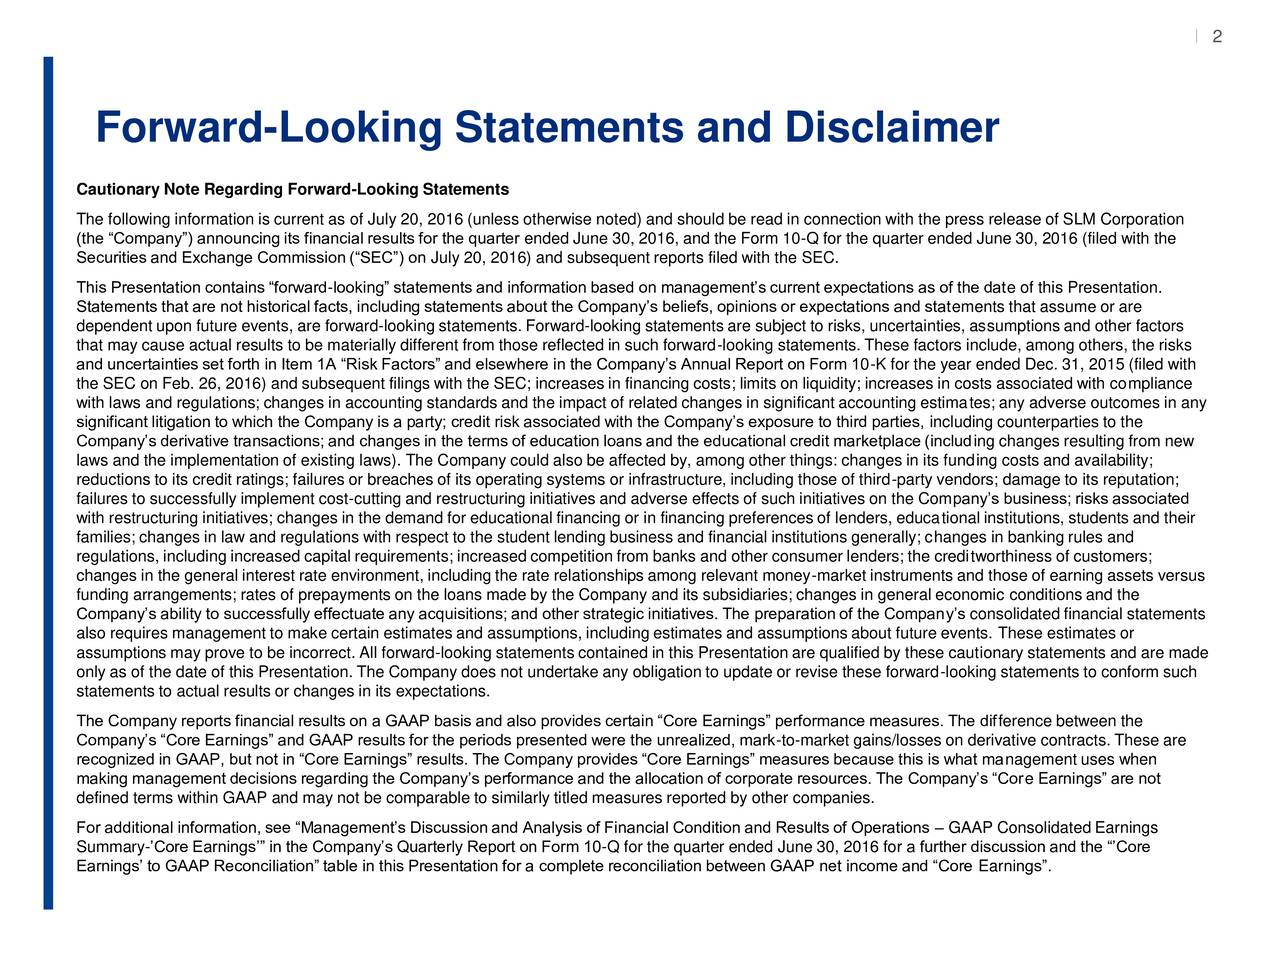 2 Forward-Looking Statements and Disclaimer Cautionary Note Regarding Forward-Looking Statements The following information is current as of July 20, 2016 (unless otherwise noted) and should be read in connection with the press release of SLM Corporation (the Company) announcing its financial results for the quarter ended June 30, 2016, and the Form 10-Q for the quarter ended June 30, 2016 (filed with the Securities and Exchange Commission (SEC) on July 20, 2016) and subsequent reports filed with the SEC. This Presentation contains forward-looking statements and information based on managements current expectations as of the date of this Presentation. Statements that are not historical facts, including statements about the Companys beliefs, opinions or expectations and statements that assume or are dependent upon future events, are forward-looking statements. Forward-looking statements are subject to risks, uncertainties, assumptions and other factors that may cause actual results to be materially different from those reflected in such forward-looking statements. These factors include, among others, the risks and uncertainties set forth in Item 1A Risk Factors and elsewhere in the Companys Annual Report on Form 10-K for the year ended Dec. 31, 2015 (filed with the SEC on Feb. 26, 2016) and subsequent filings with the SEC; increases in financing costs; limits on liquidity; increases in costs associated with compliance with laws and regulations; changes in accounting standards and the impact of related changes in significant accounting estimates; any adverse outcomes in any significant litigation to which the Company is a party; credit risk associated with the Companys exposure to third parties, including counterparties to the Companys derivative transactions; and changes in the terms of education loans and the educational credit marketplace (including changes resulting from new laws and the implementation of existing laws). The Company could also be affected by, among